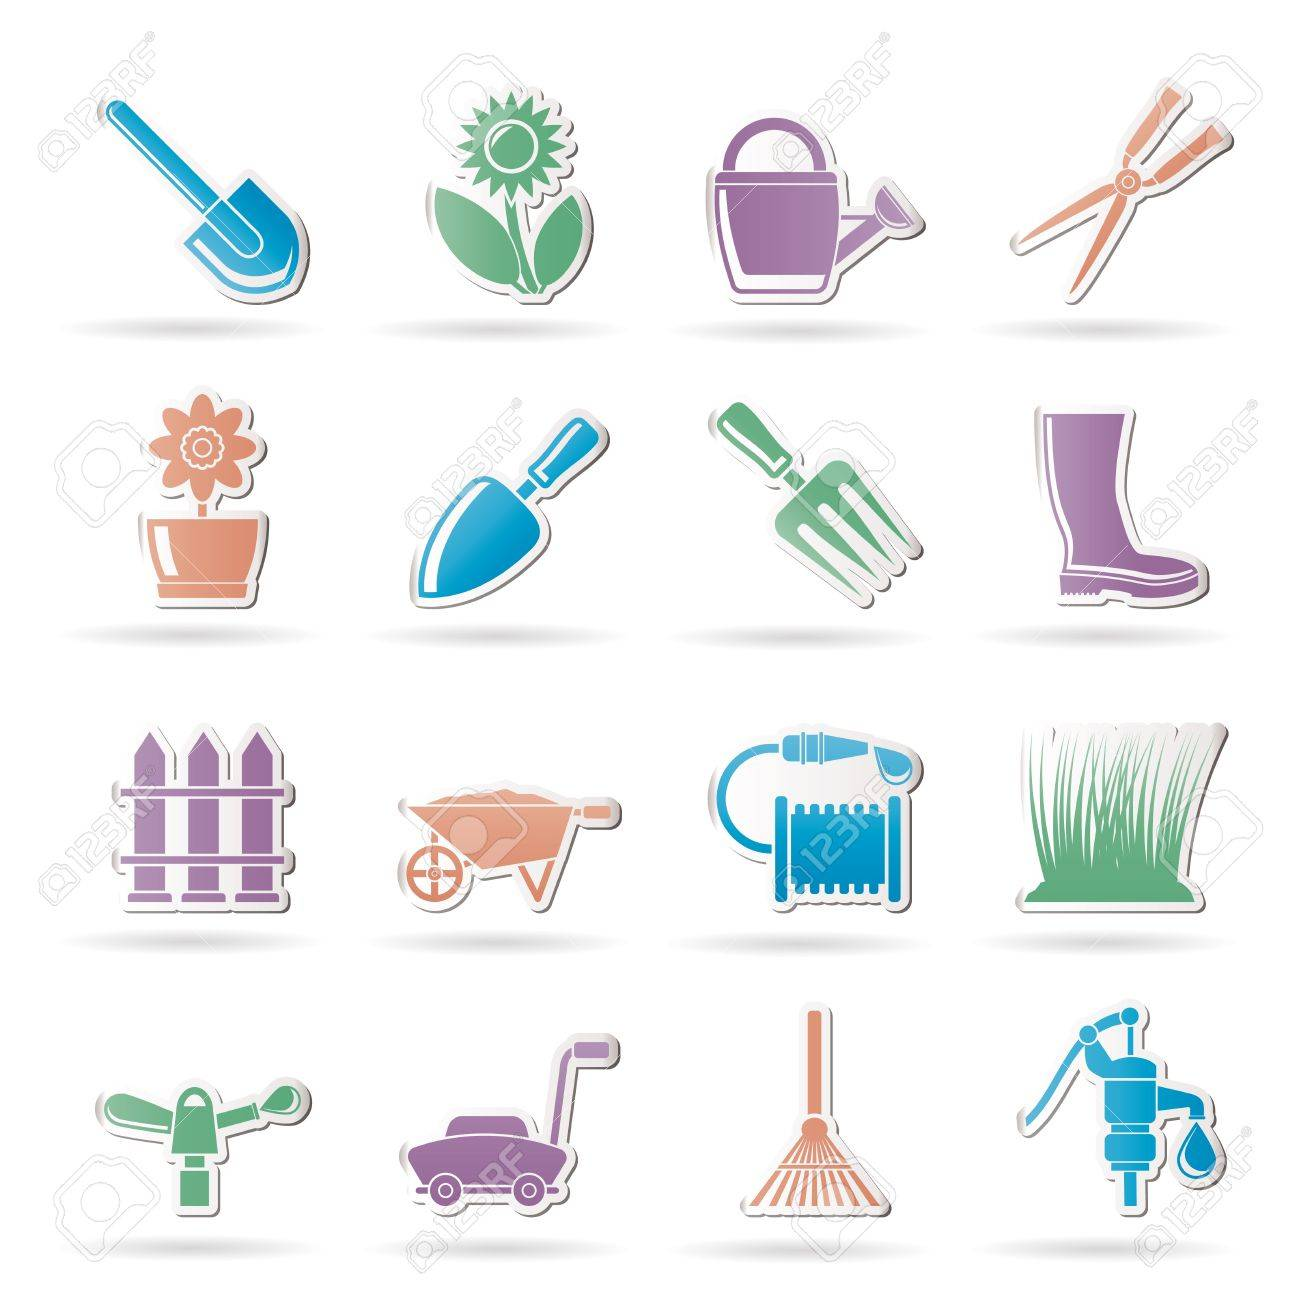 Garden and gardening tools and objects icons - vector icon set Stock Vector - 9719457